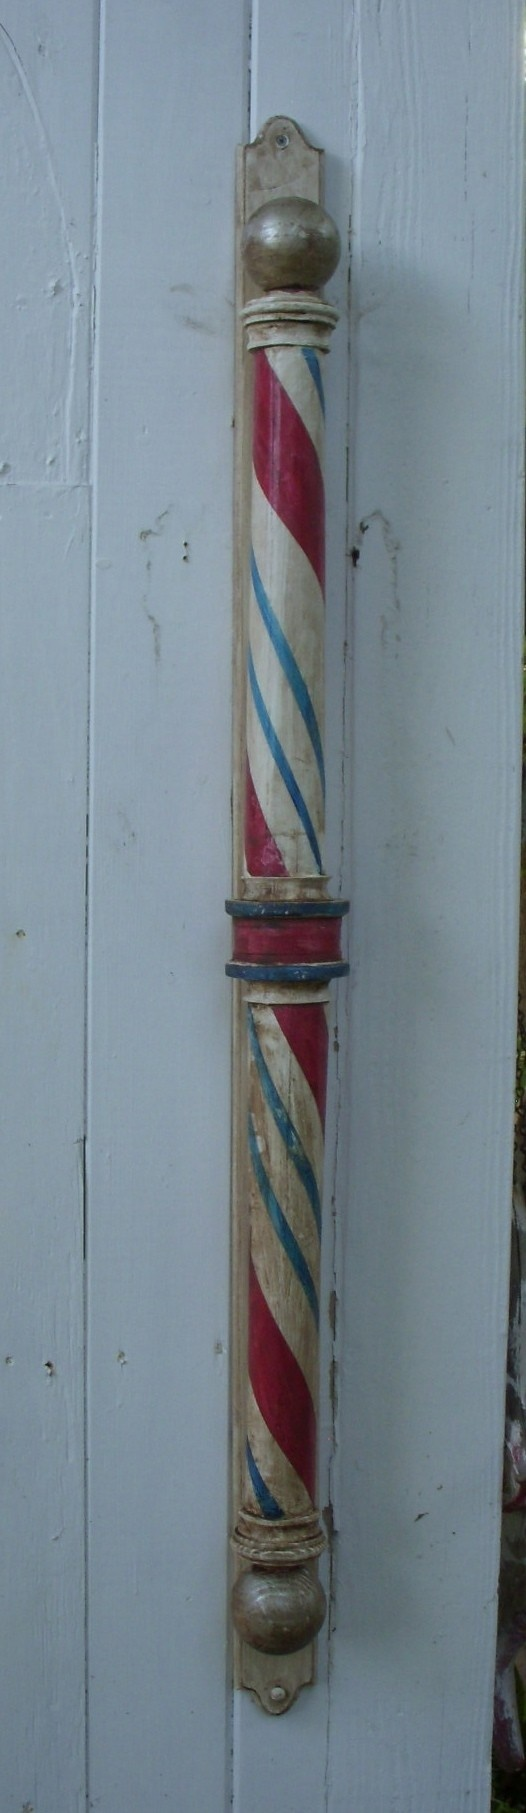 Handcrafted Circa 1890 Barber Shop Pole - Wooden - dentist, doctor, surgeon, gift idea